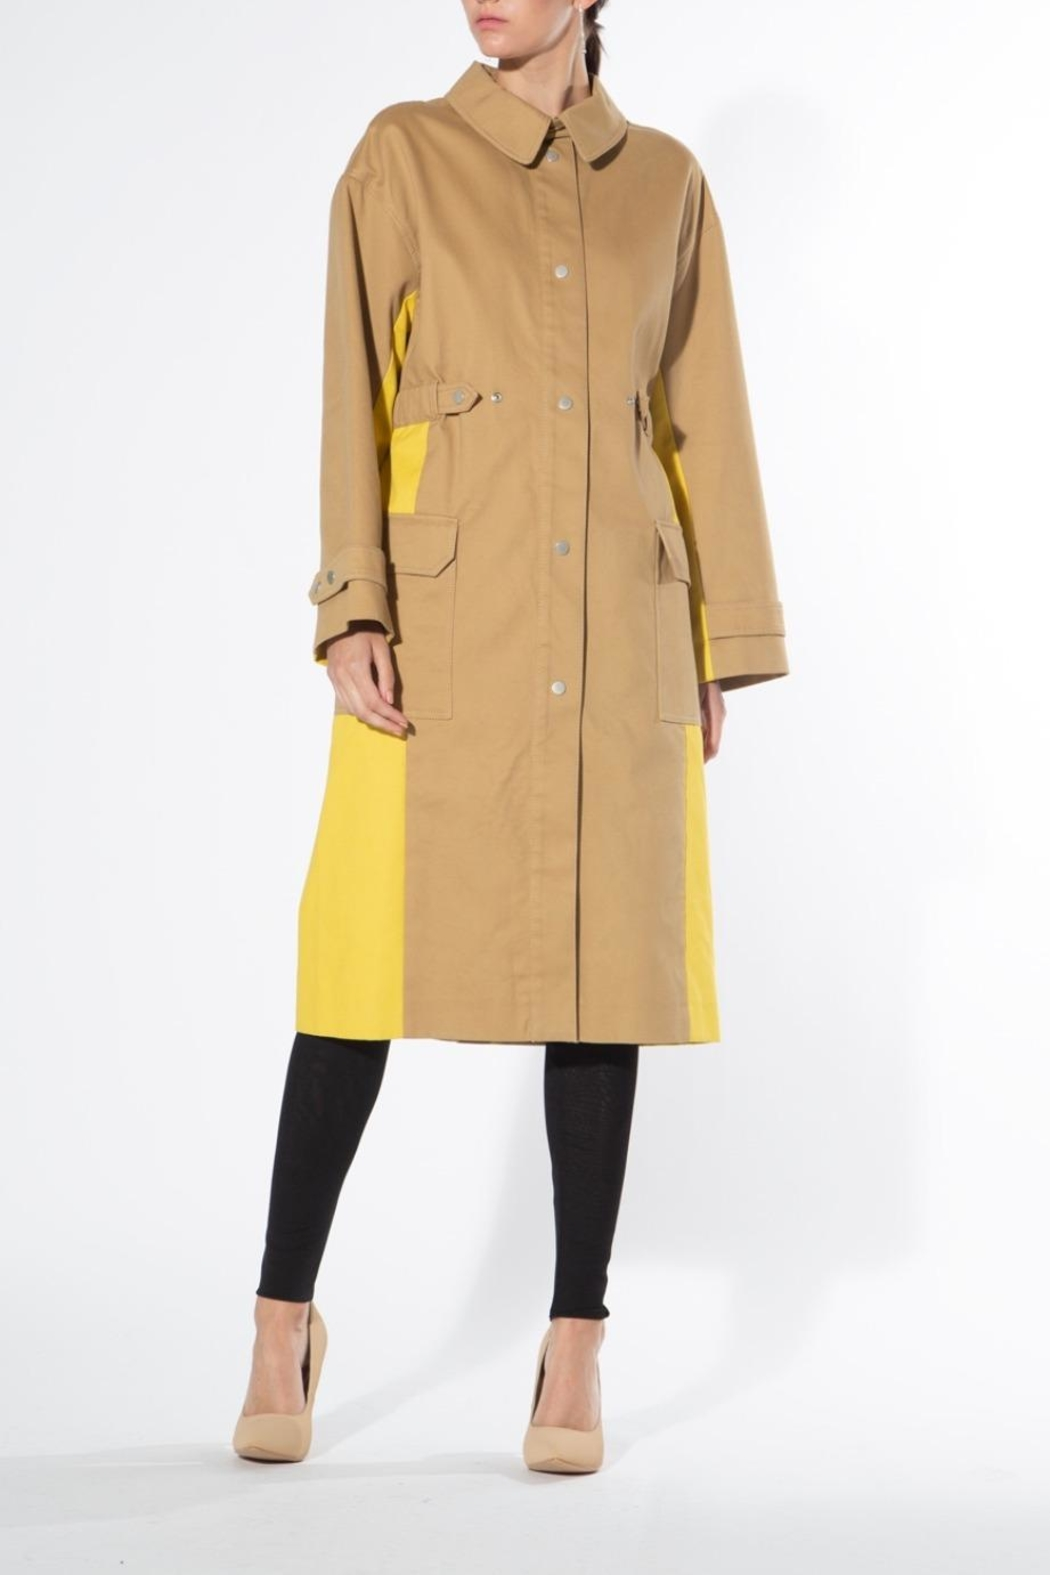 BEULAH STYLE Two Tone Trench Coat - Main Image